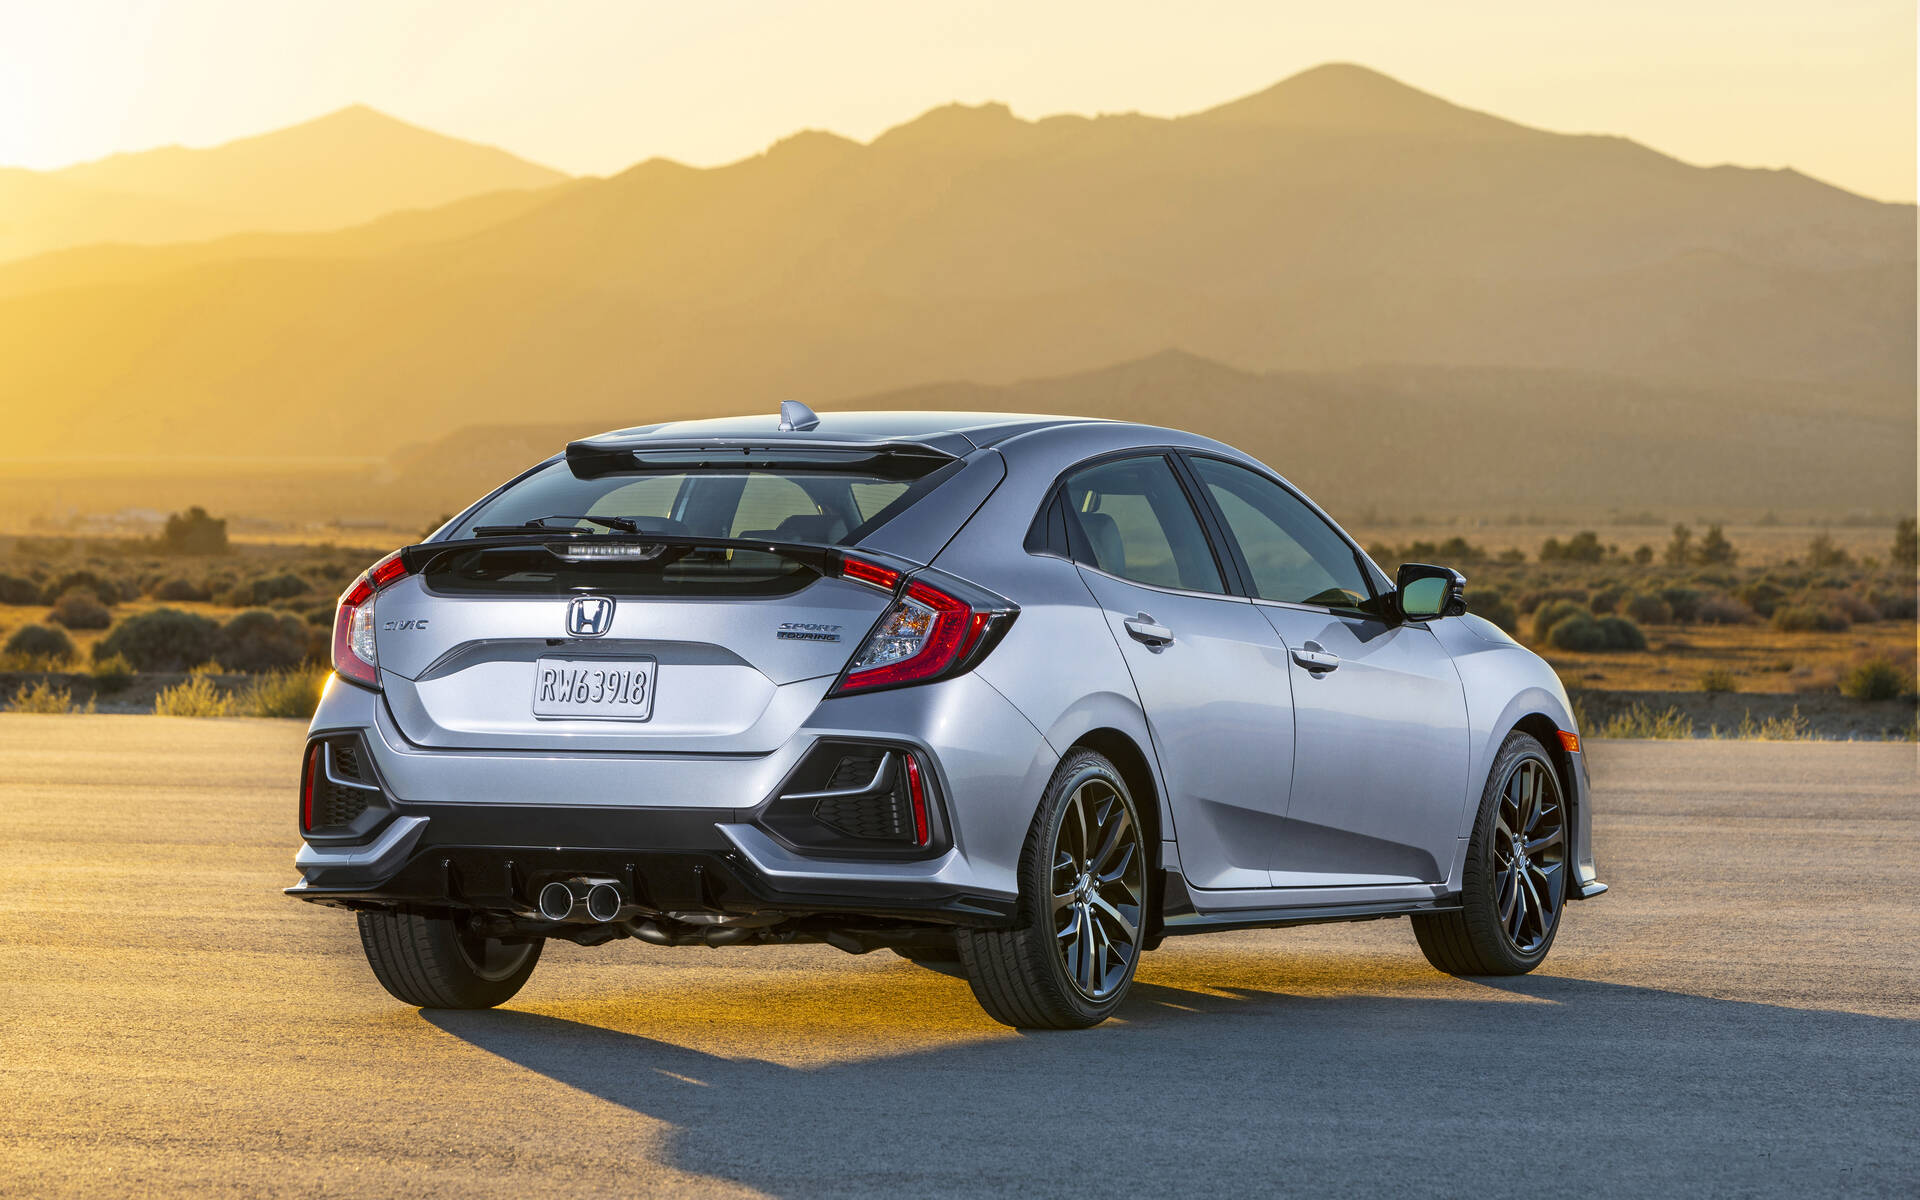 2020 Honda Civic Hatchback The Practical Alternative The Car Guide